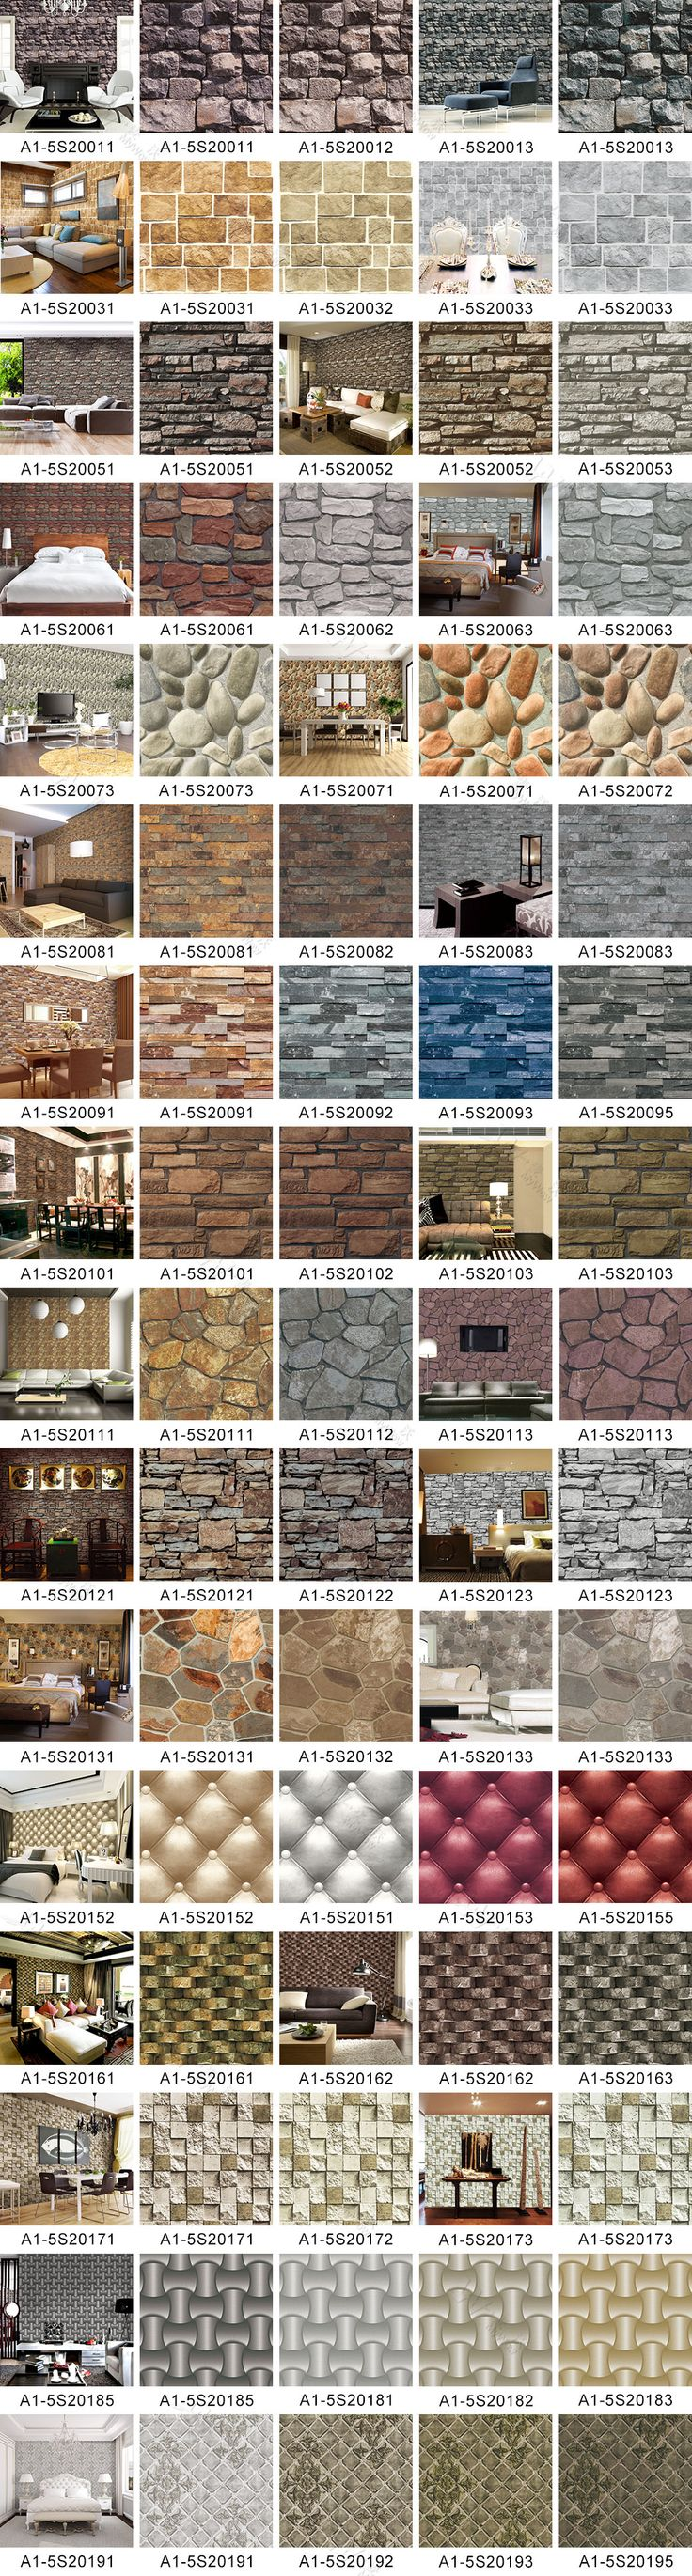 A1-4 Fashion Home Decorative PVC 3D Brick Stone Wallpaper Style: 3D; Material: PVC; Unit weight: 280g/sqm; Roll size(width*length): 0.53m*10m; MOQ: 16 rolls/design;  Contact: Kitty (oversea sales) ; Whatsapp: +86 13926037376; Wechat: Mywowgz;  Email: mywow@myhomewalldecor.com